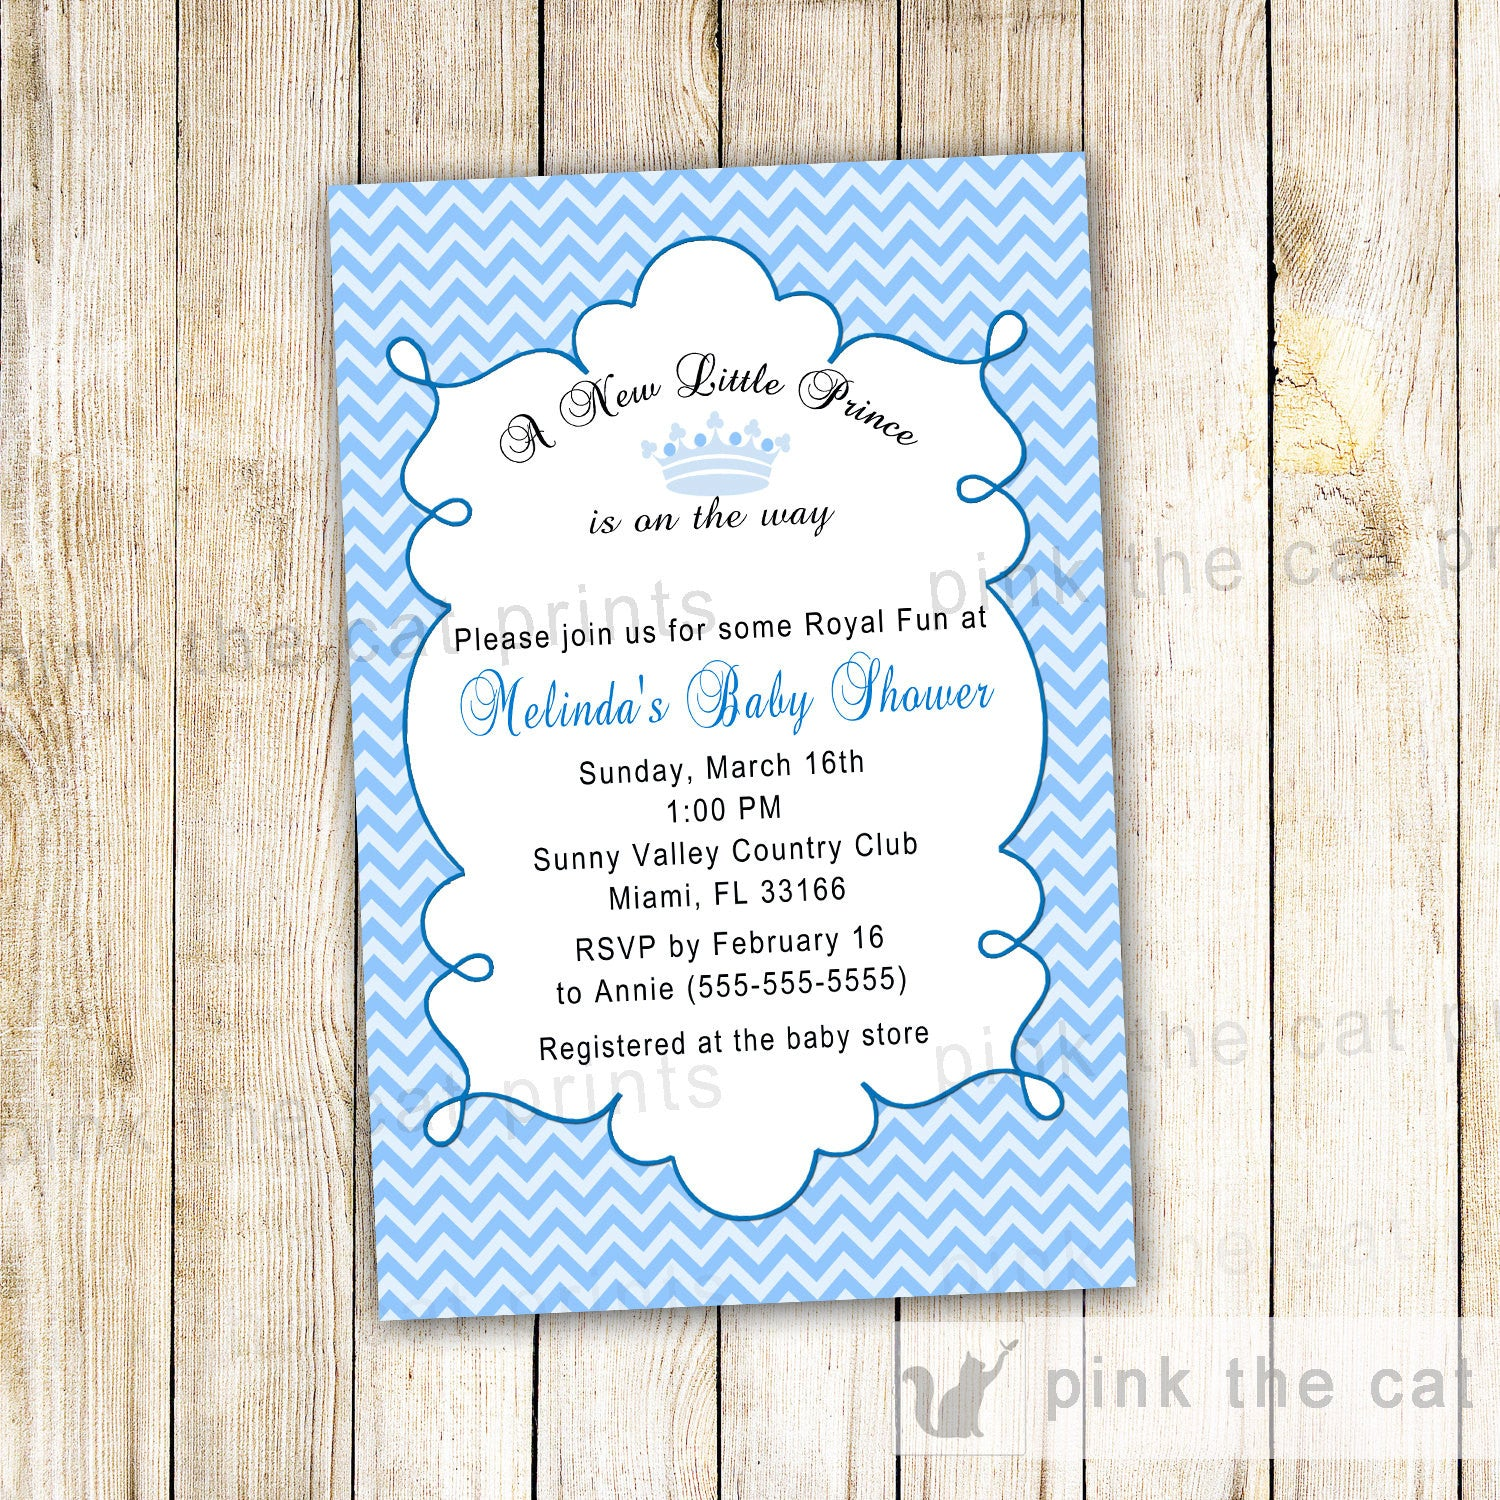 New little prince baby shower invitation boy blue chevron pink the cat new little prince baby shower invitation boy blue chevron prince blue chevron invitation filmwisefo